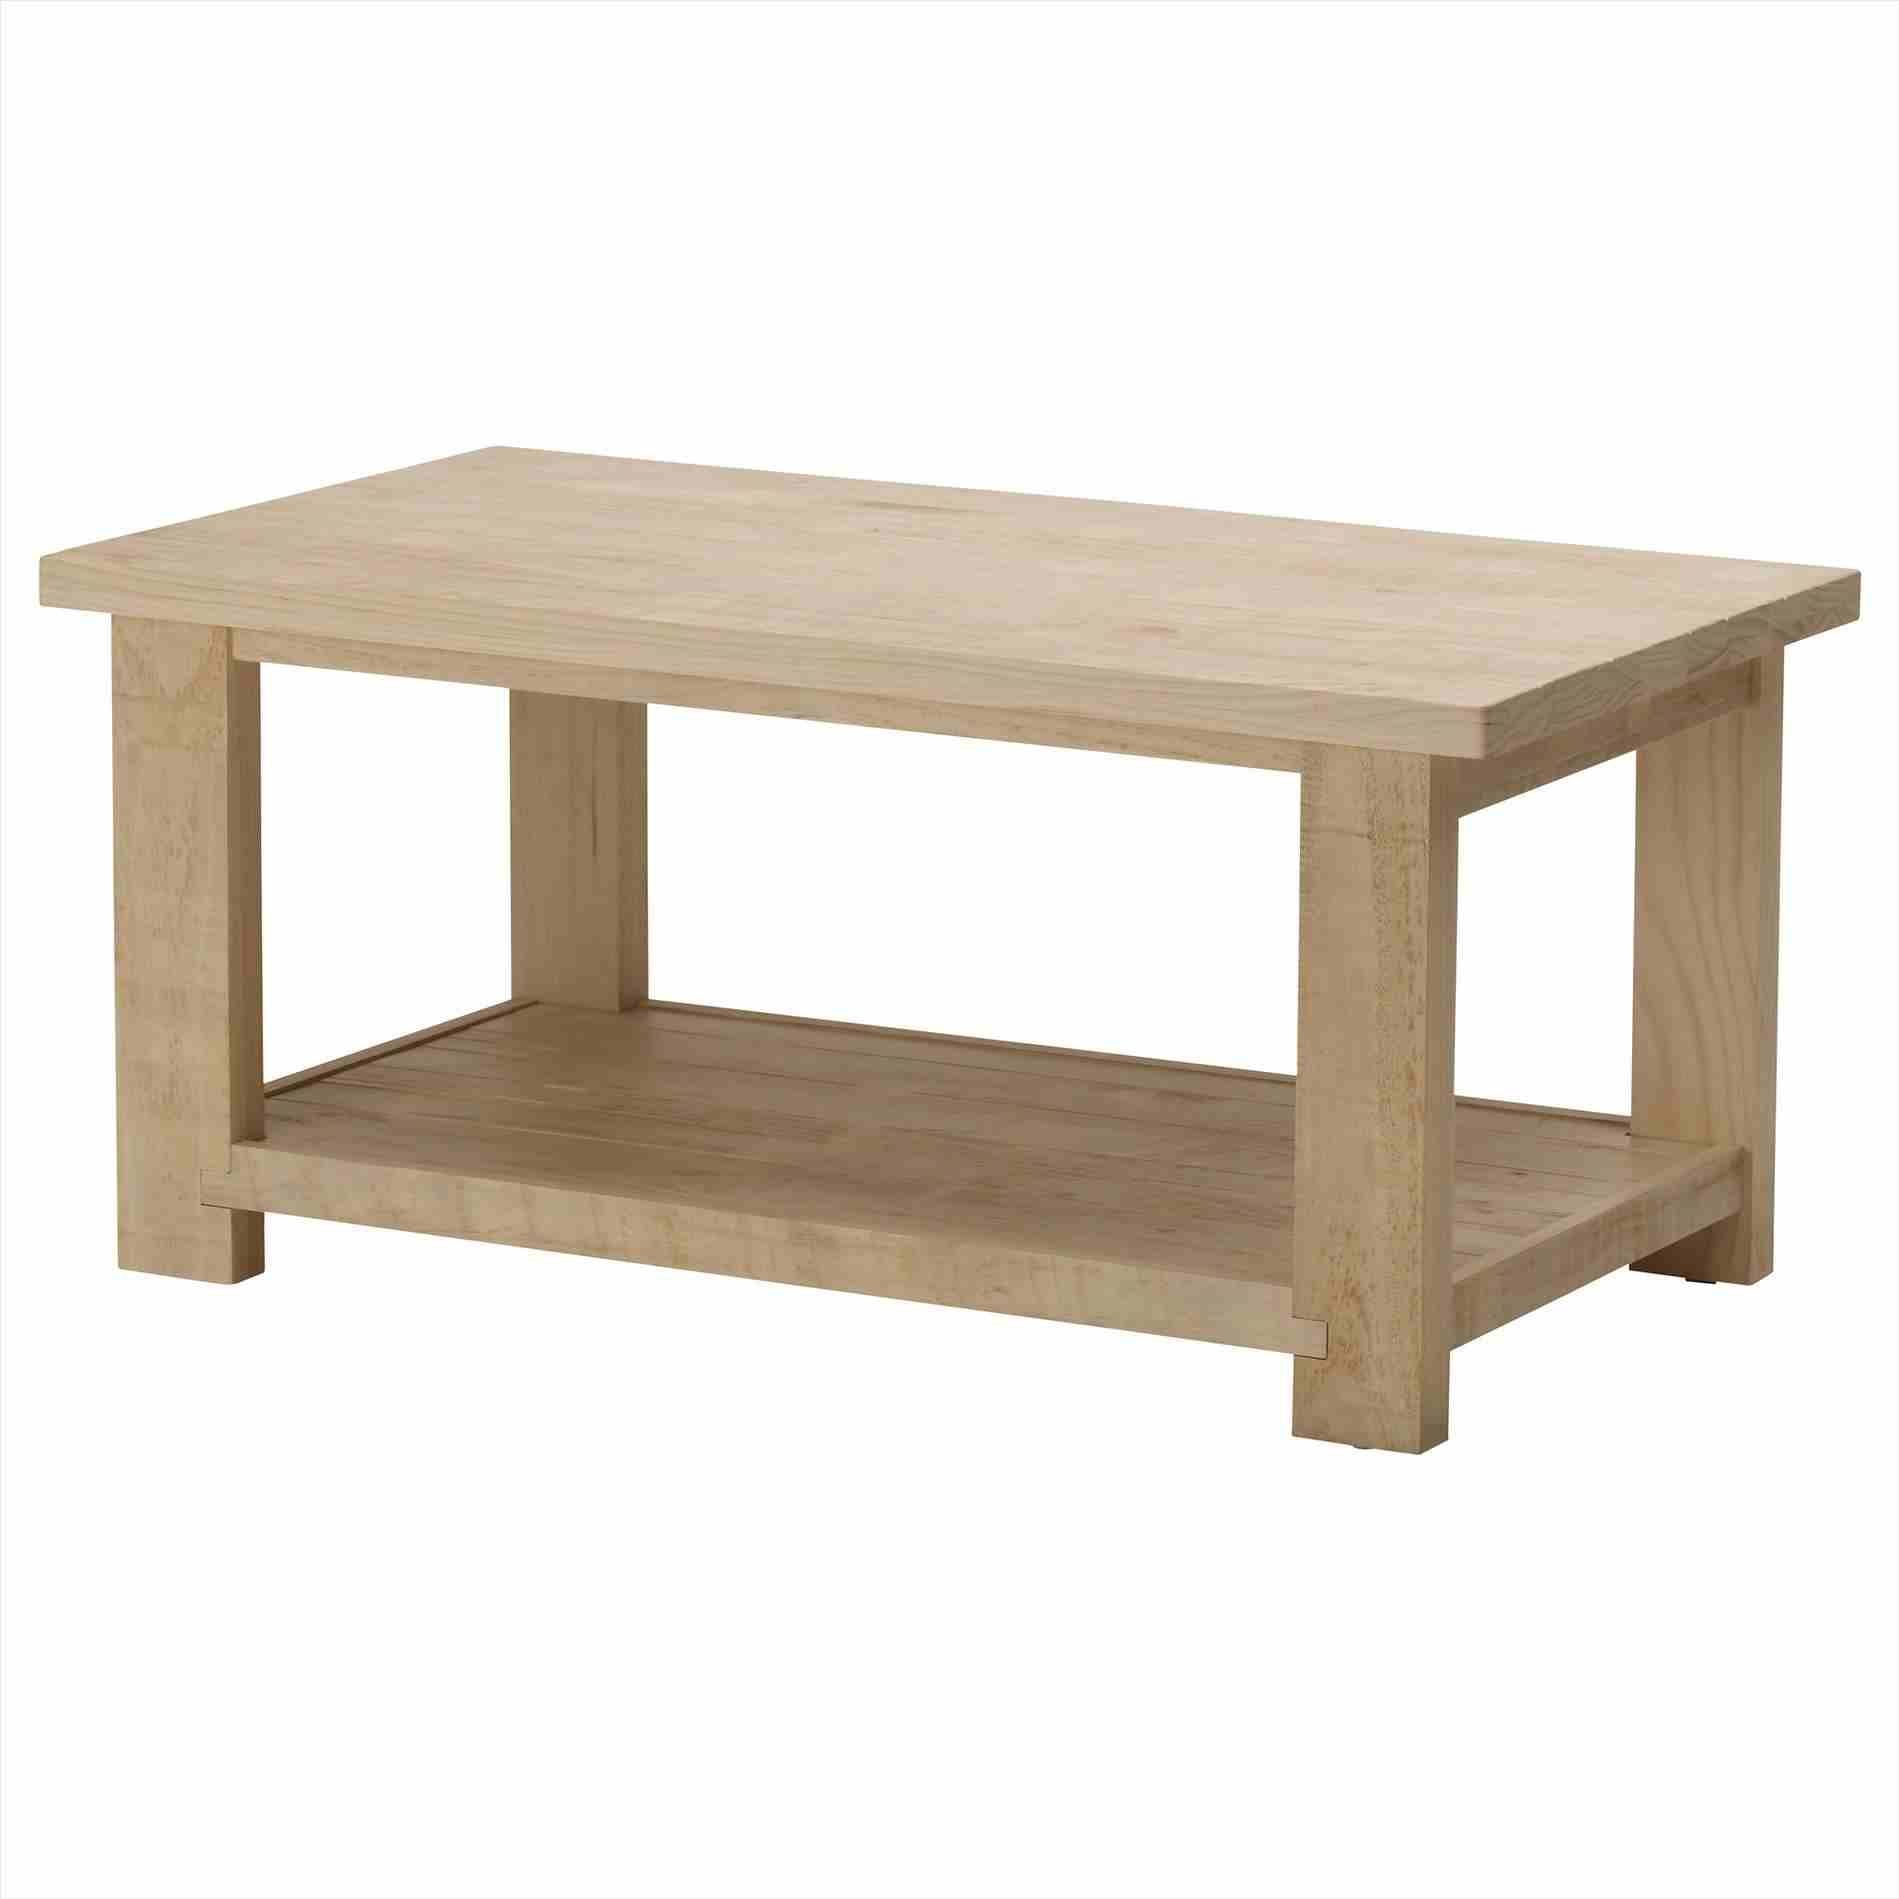 Good Coffee Table Height Full Size Of Coffee Table Awesomege Coffee Table Height Image Ideas Standard Of Bell Ikea Coffee Table Coffee Table Ikea Sofa Table [ 1899 x 1899 Pixel ]